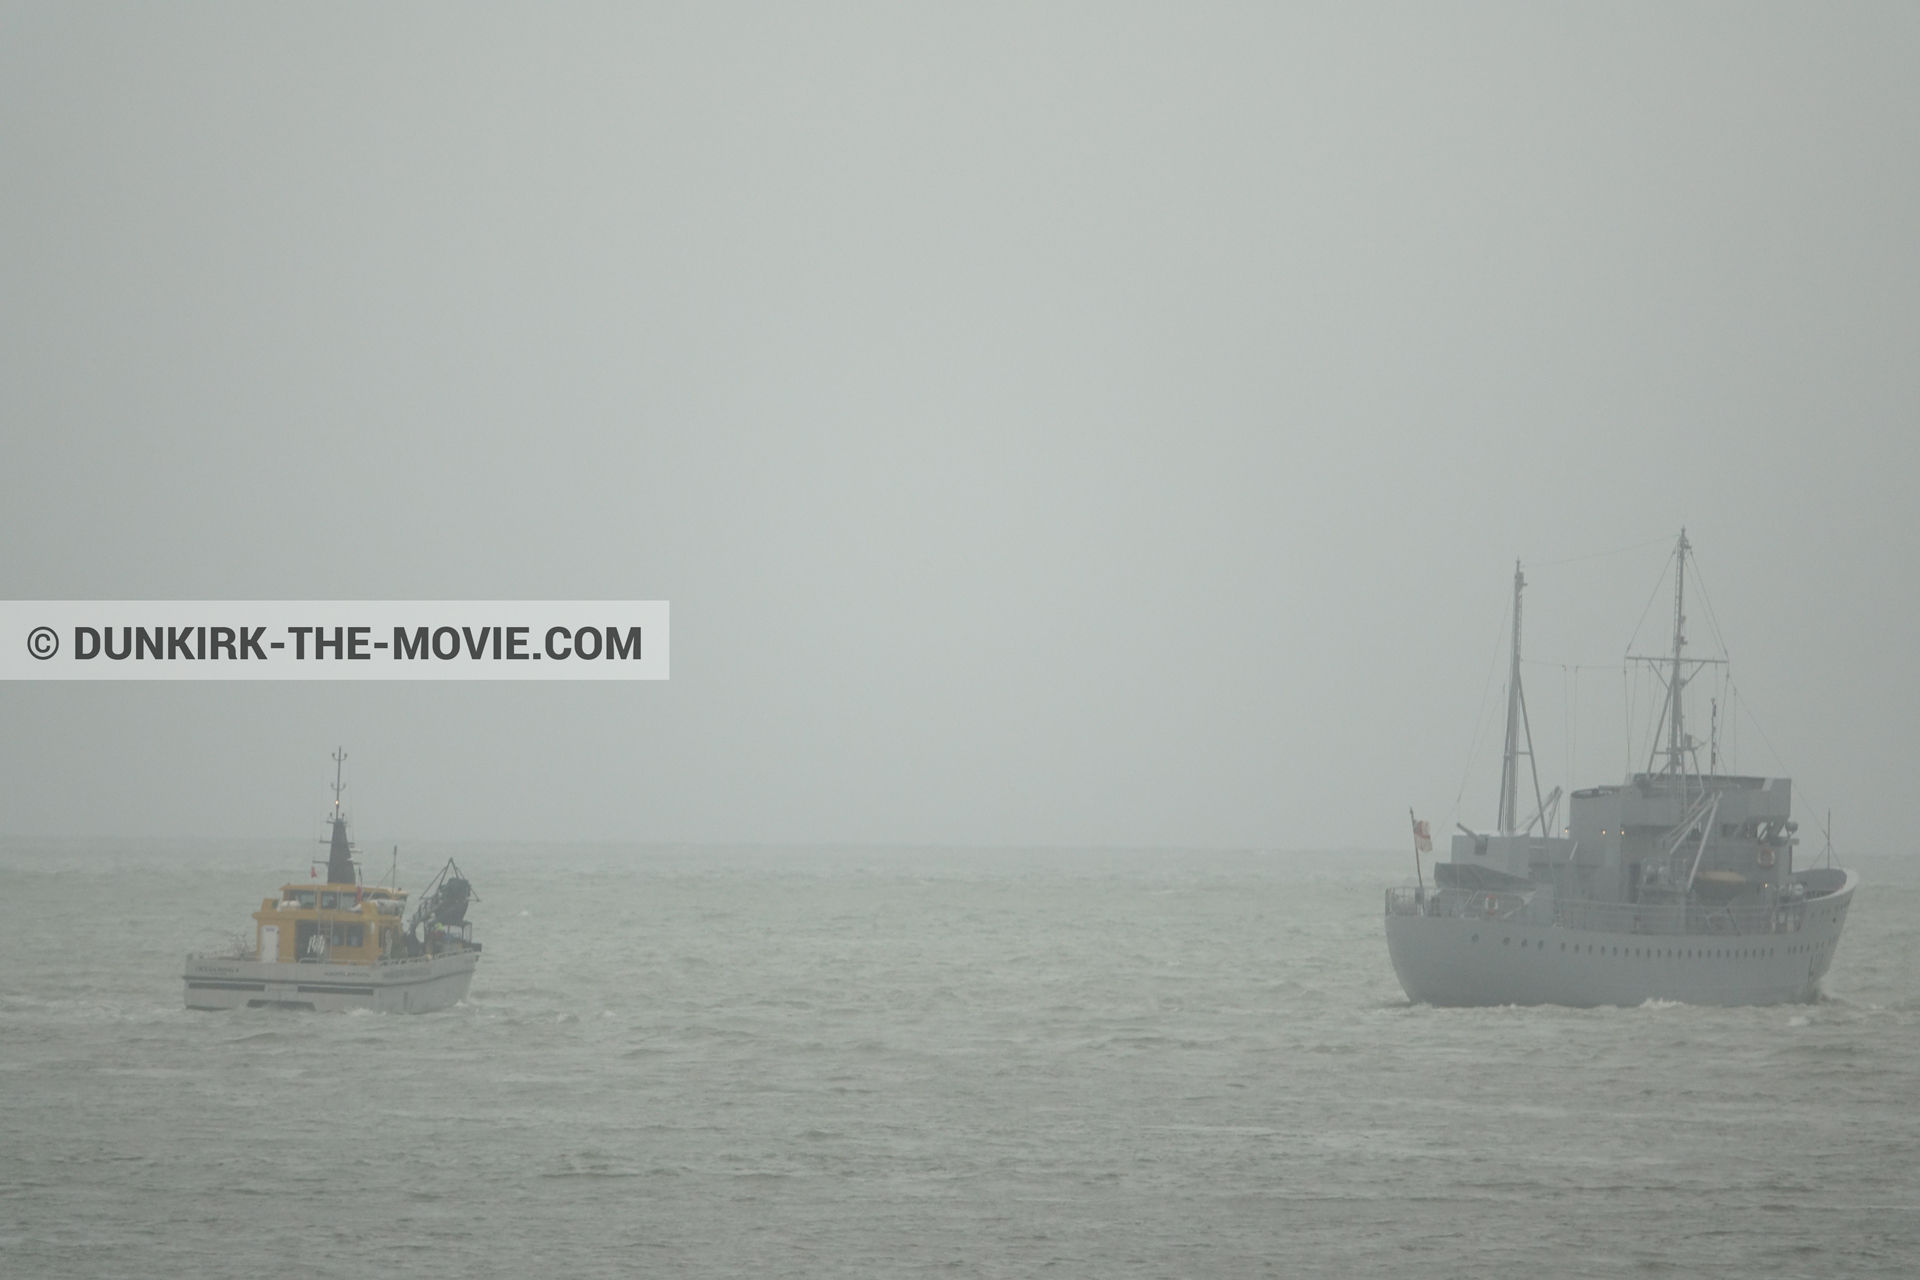 Picture with boat, grey sky, H11 - MLV Castor, calm sea, Ocean Wind 4,  from behind the scene of the Dunkirk movie by Nolan